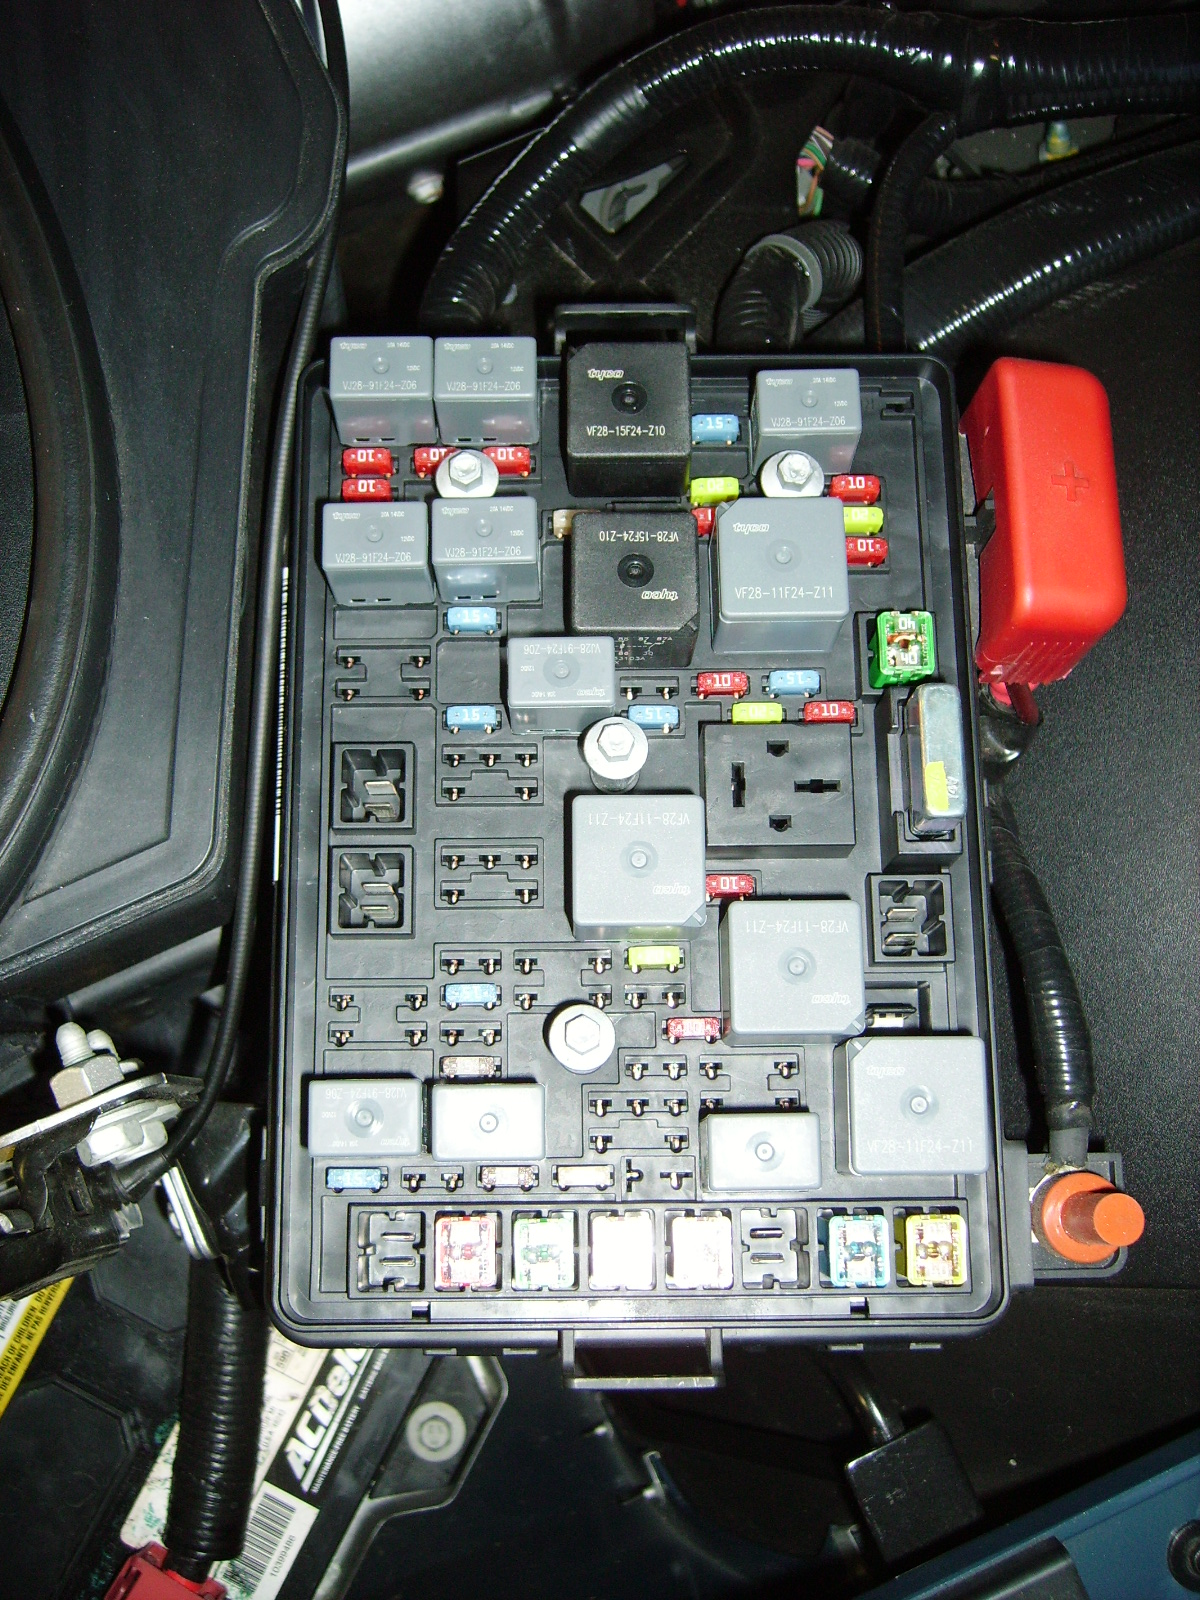 40354d1305120997 reverse light out fuse box under hood 07 saturn ion fuse box 2004 saturn ion spoiler \u2022 wiring diagrams 2005 f350 under hood fuse panel diagram at eliteediting.co